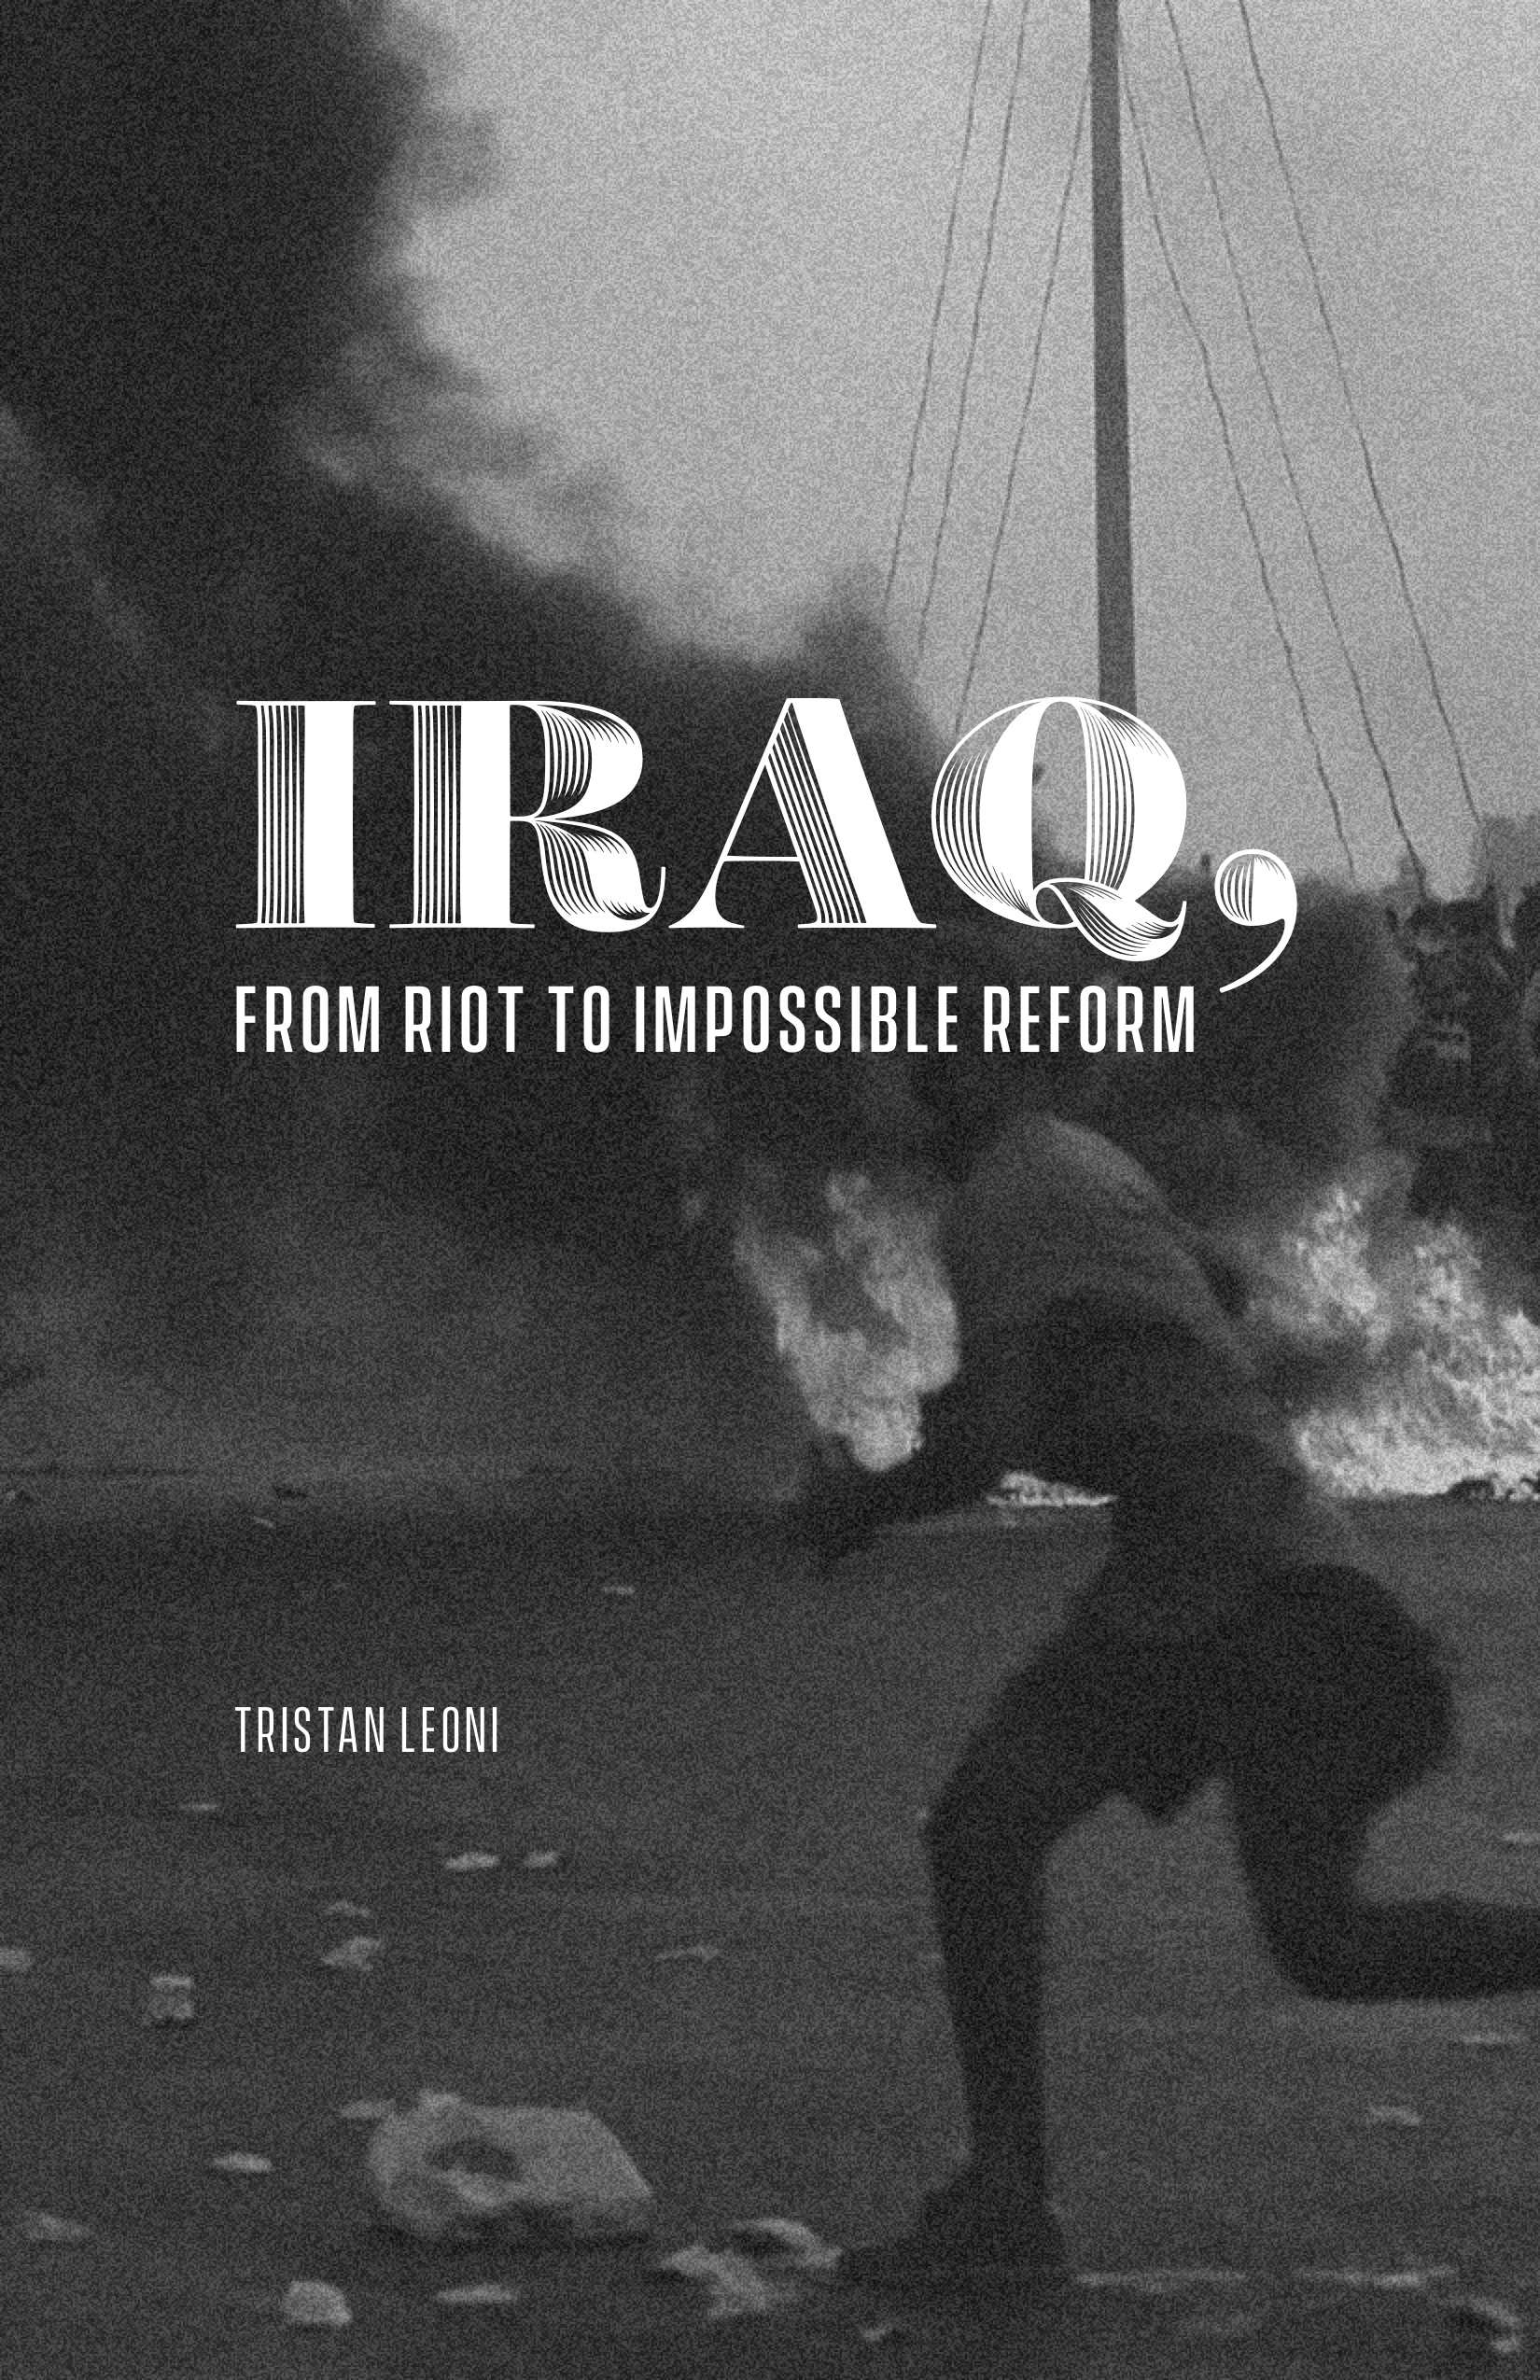 Cover Image for Iraq: From Riot to Impossible Reform